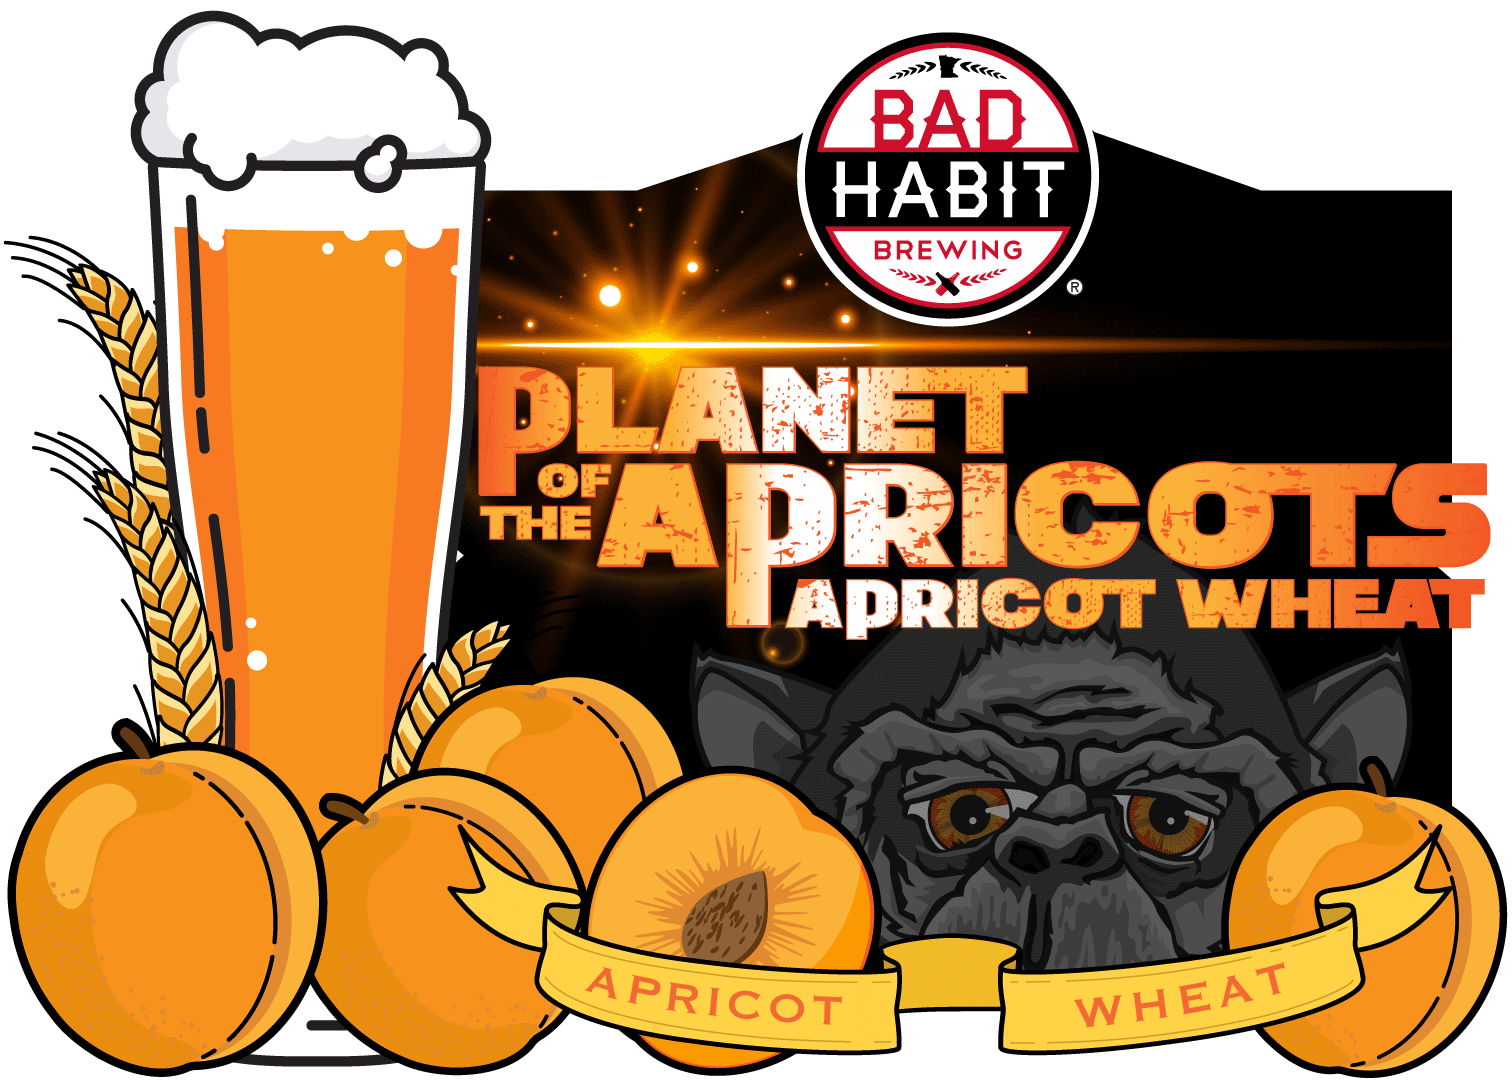 PLANET OF THEAPRICOTS - Apricot Wheat | 6% ABVSomewhere in the universe, there has to be something better than your old domestic beer. Has to be! We have found it and it is Planet of the Apricots. A beer with all the bready, malty characteristics of a good wheat beer, infused with all the delicious, sweet fruitiness of apricots. Light, fruity and refreshing, this beer drinks like it's from a different world.